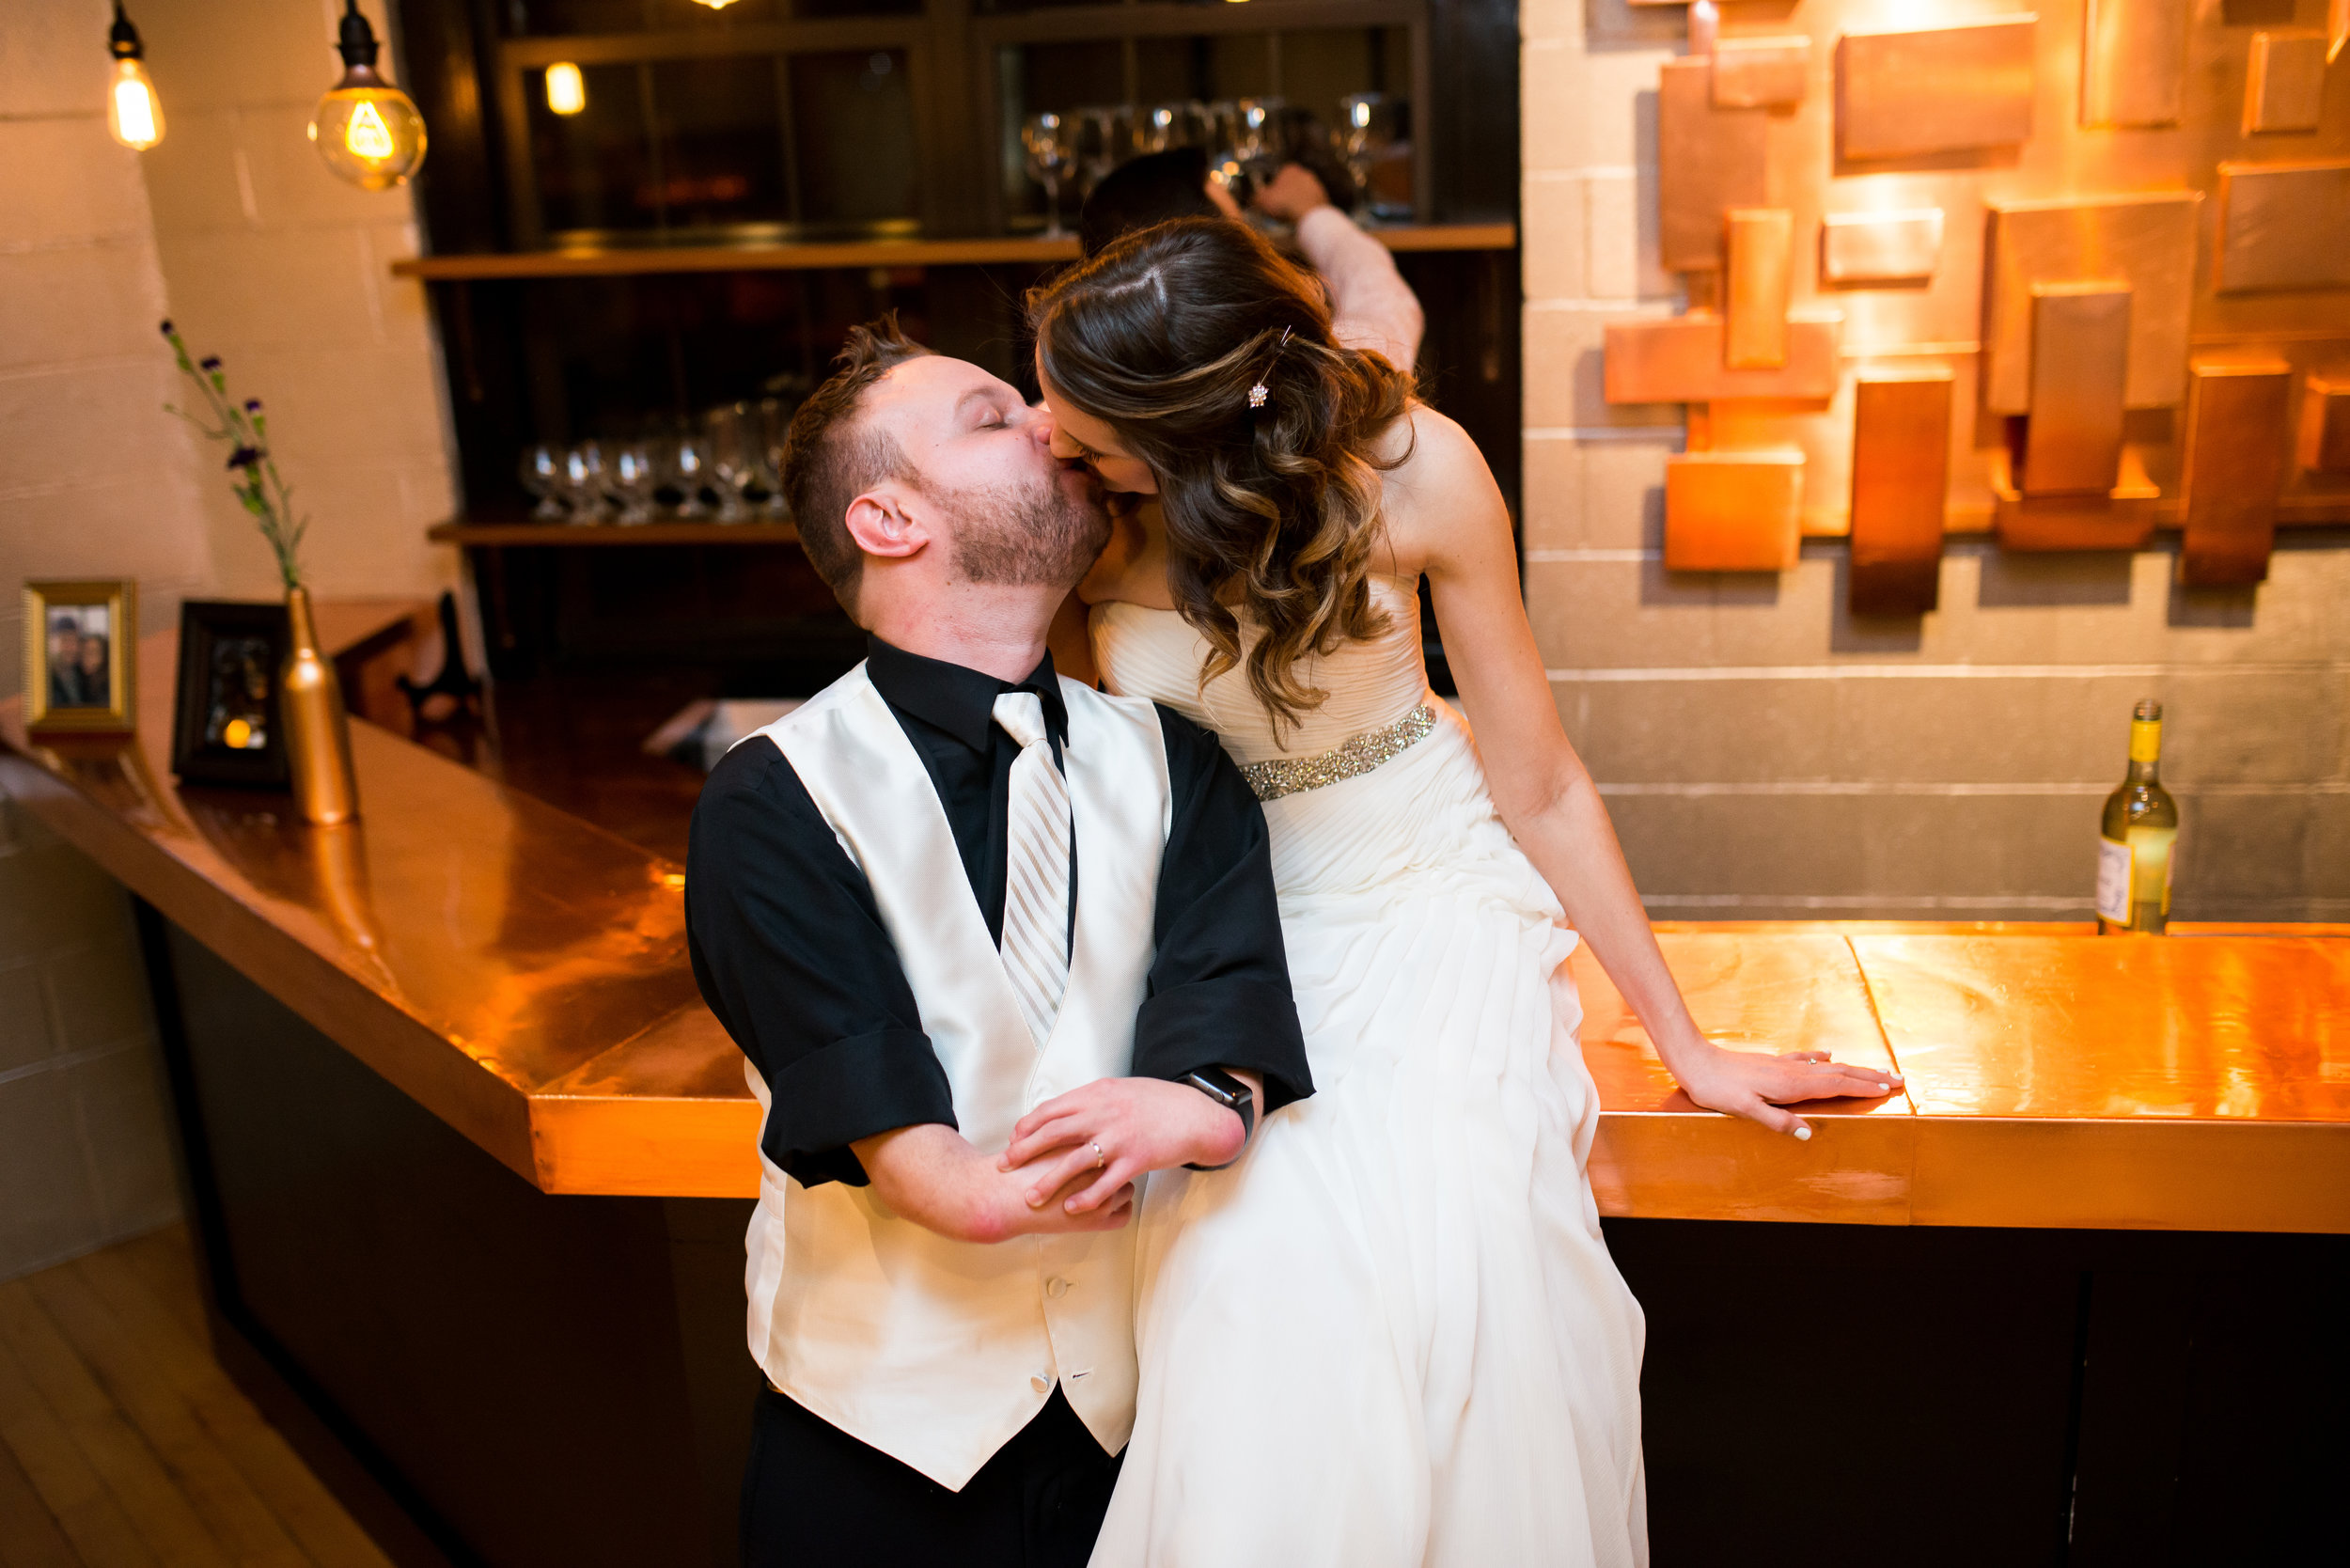 LUV LENS_WEDDING_EMILY AND ANDREW-394.jpg